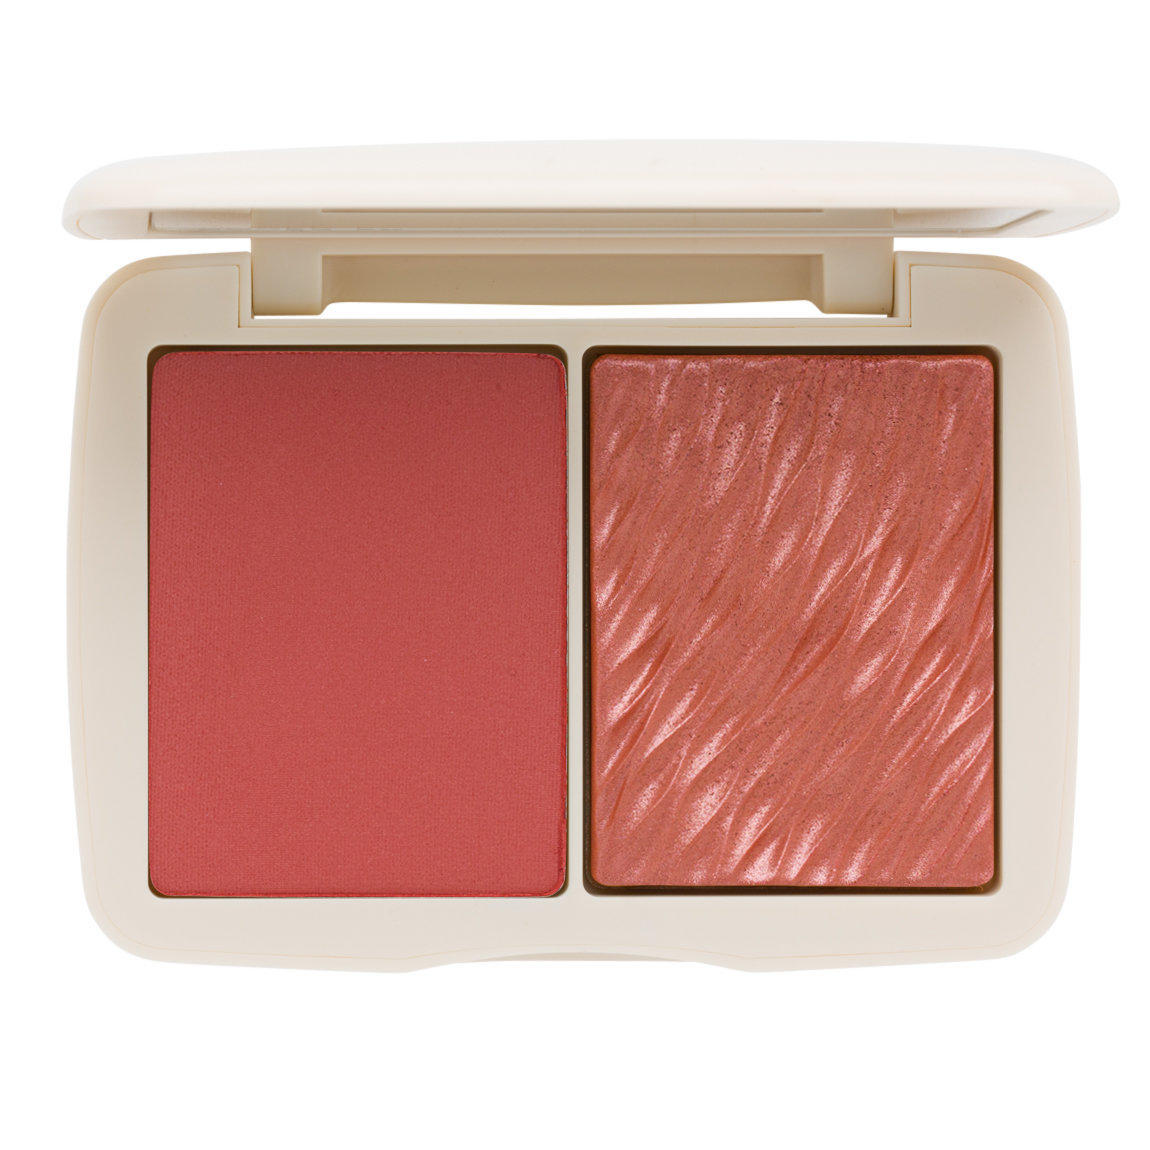 Cover FX Monochromatic Blush Duo Spiced Cinnamon